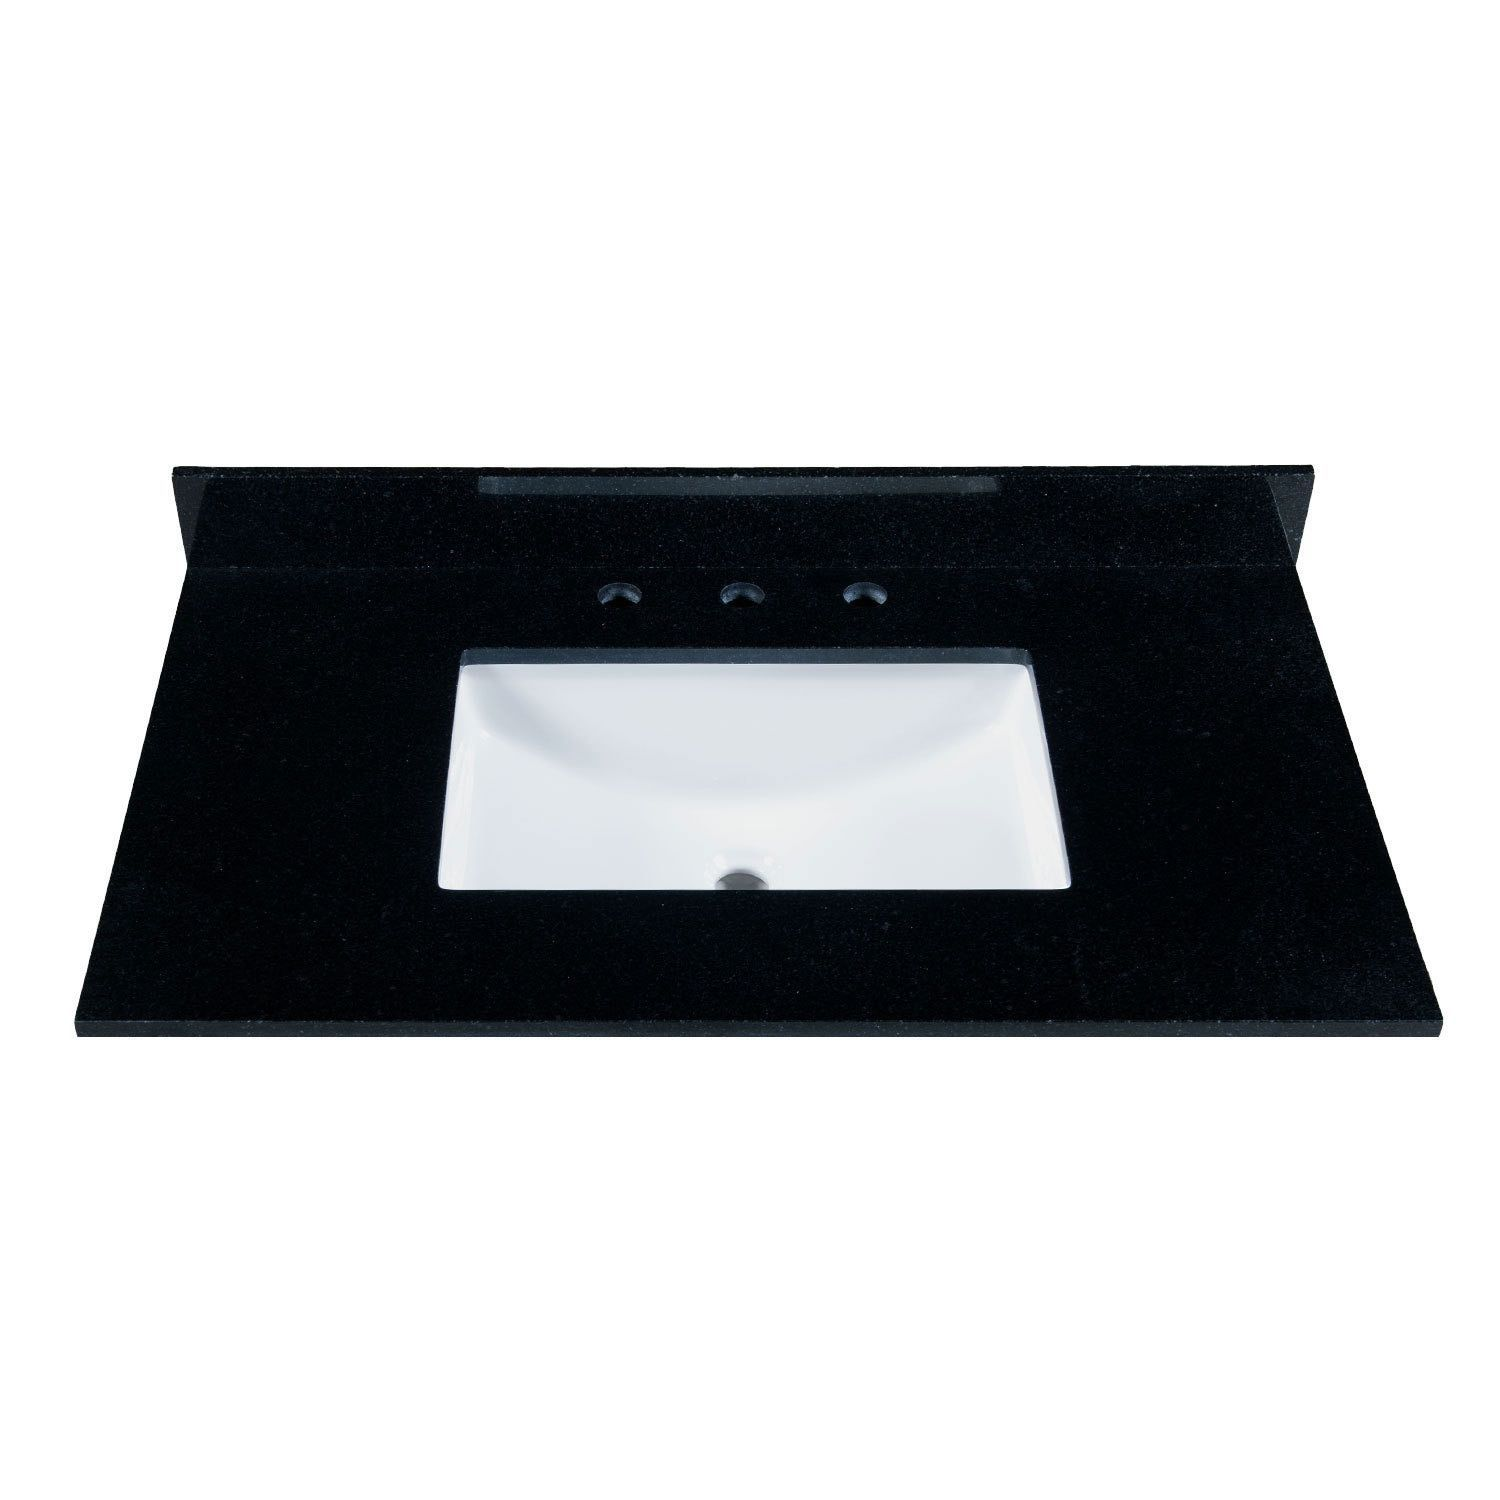 Maykke 37-inch Black Granite Countertop with 8-inch Widespread ...